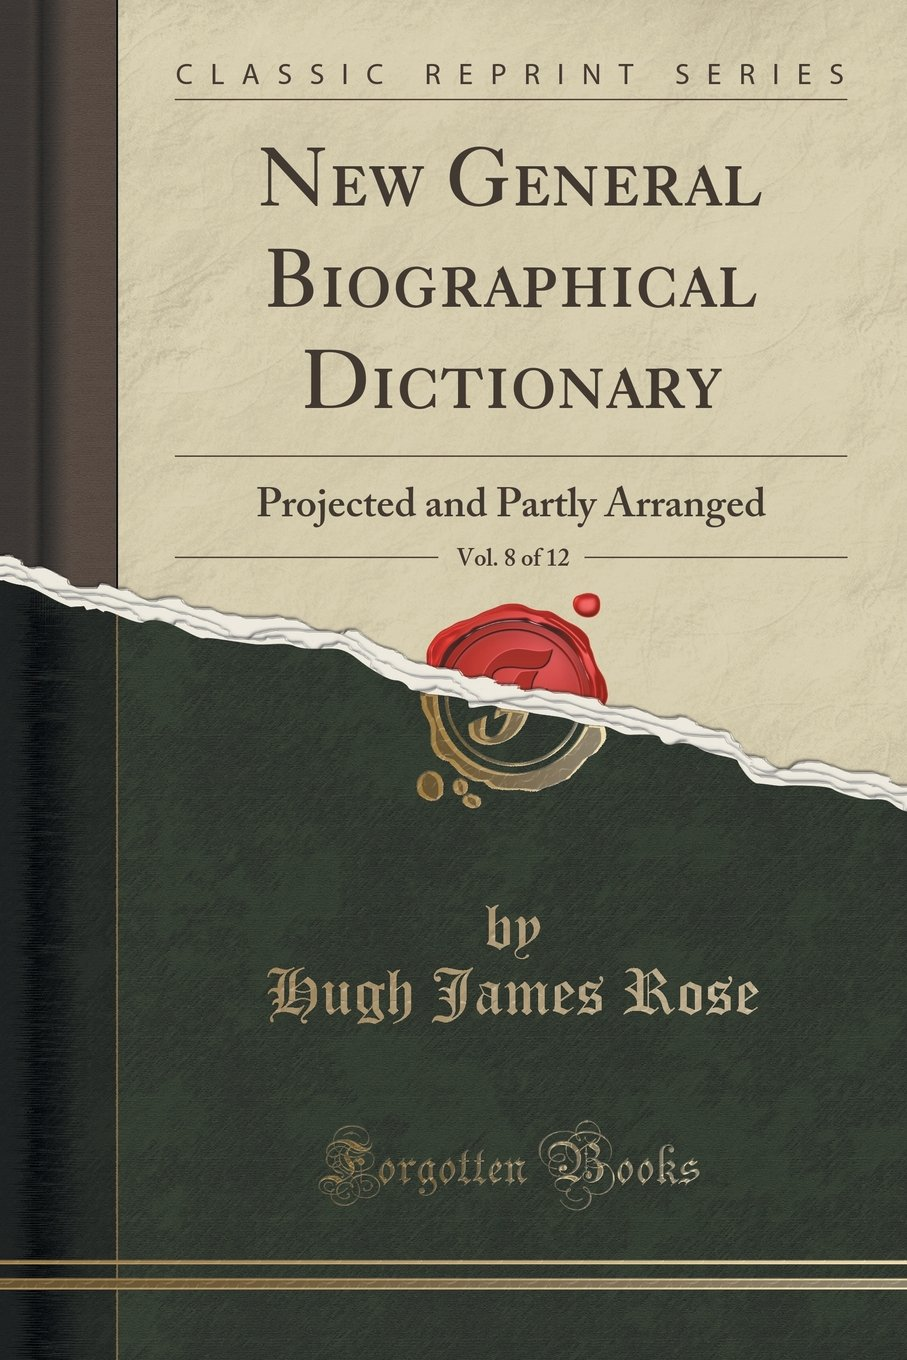 New General Biographical Dictionary, Vol. 8 of 12: Projected and Partly Arranged (Classic Reprint) pdf epub